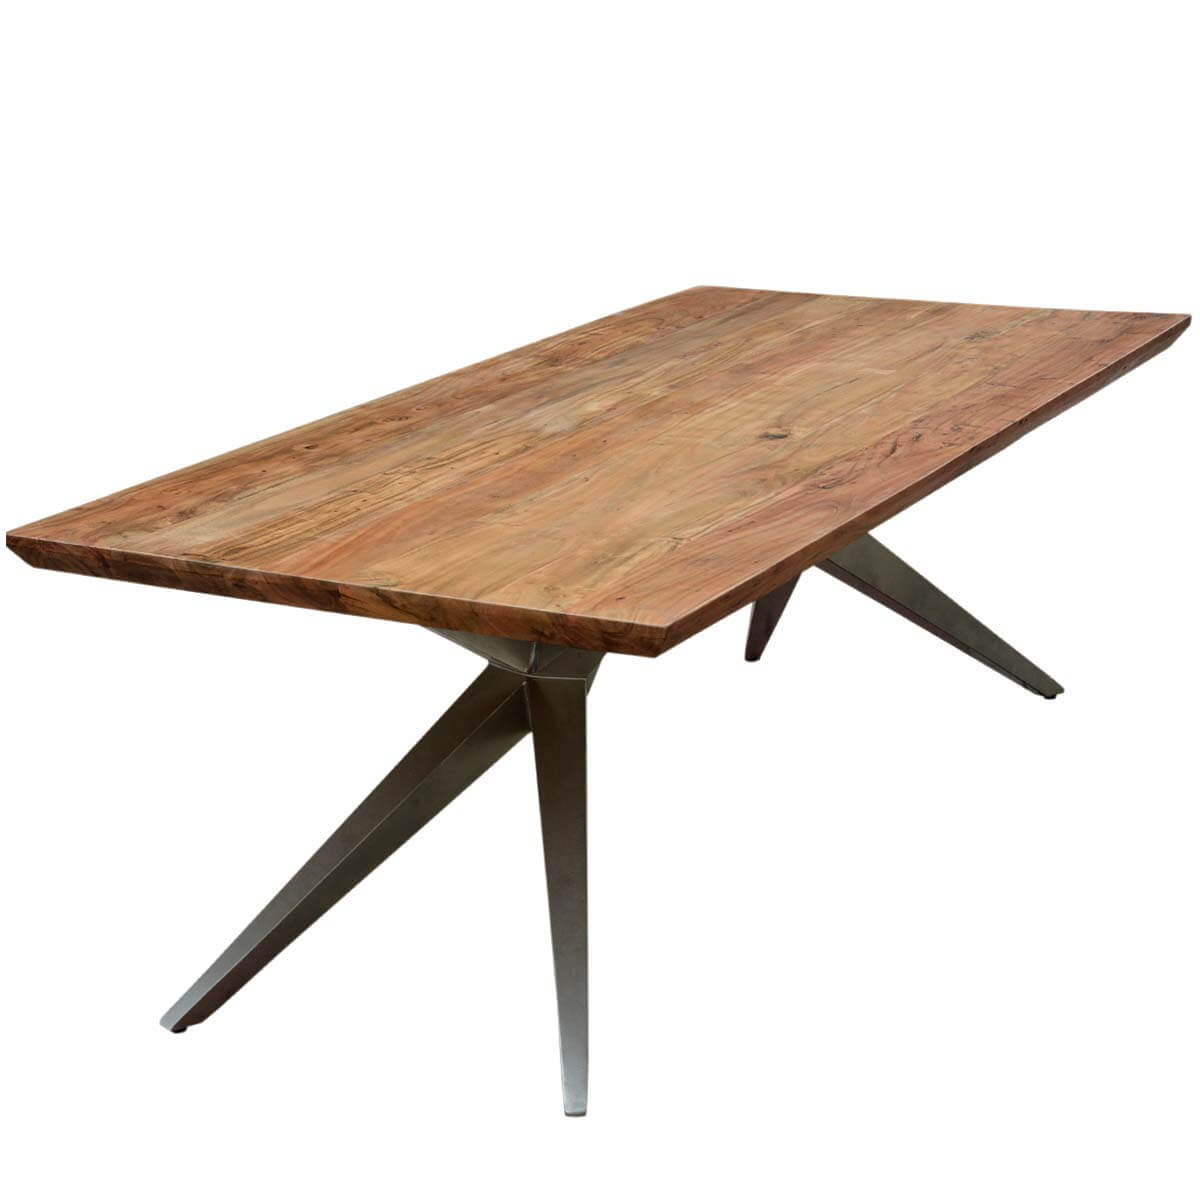 Unique industrial spyder loft solid wood hankin large for Unique dining tables